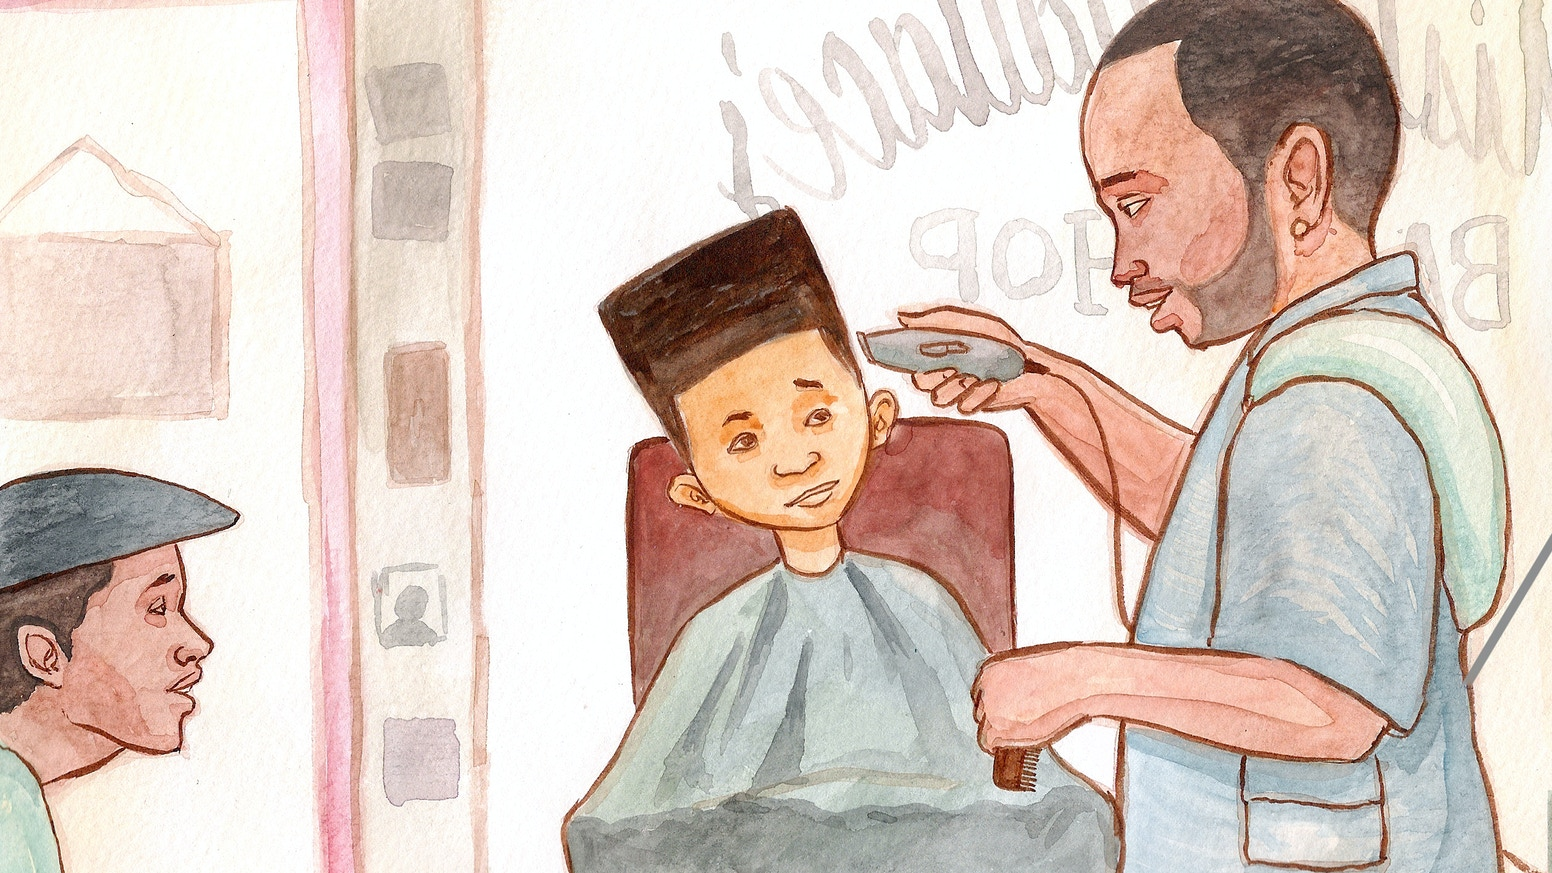 A bi-lingual story about a young boy, his first hair cut, and the trust built between a father and son.